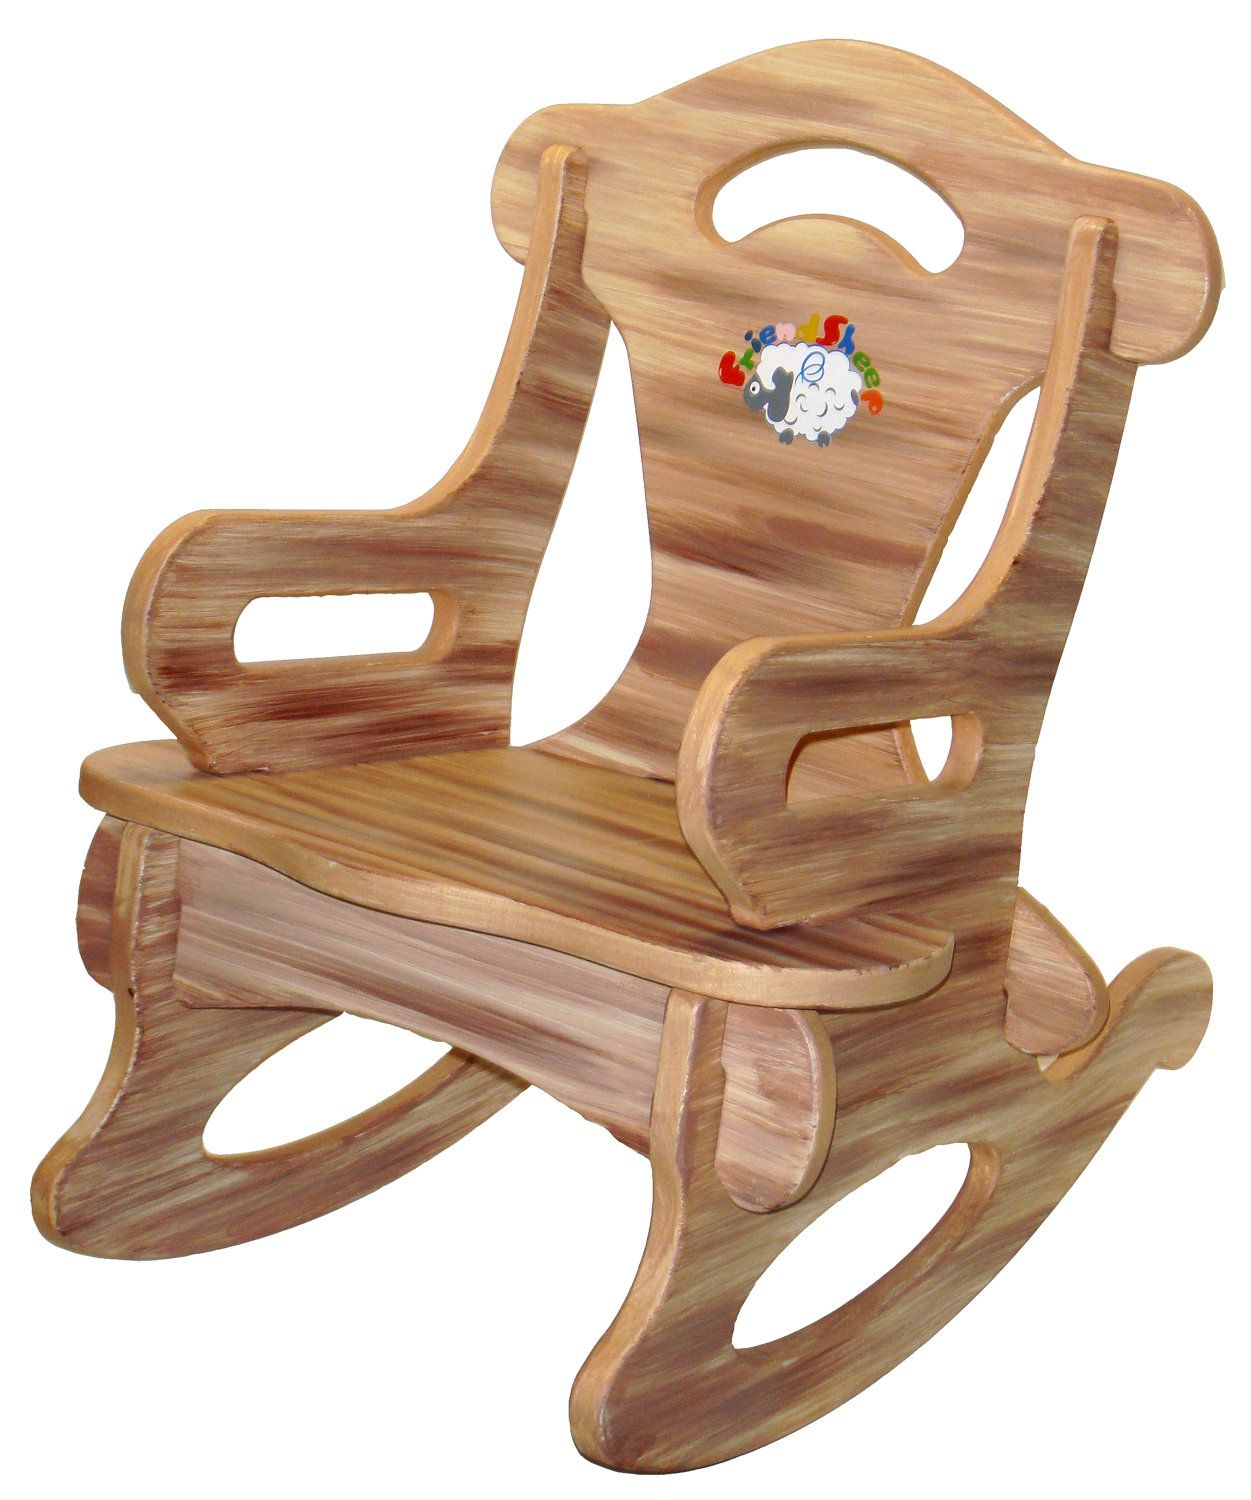 No Fasteners, Slips And Locks Together. Rocking Chair | Woodworking |  Pinterest | Fasteners, Locks And Rocking Chairs